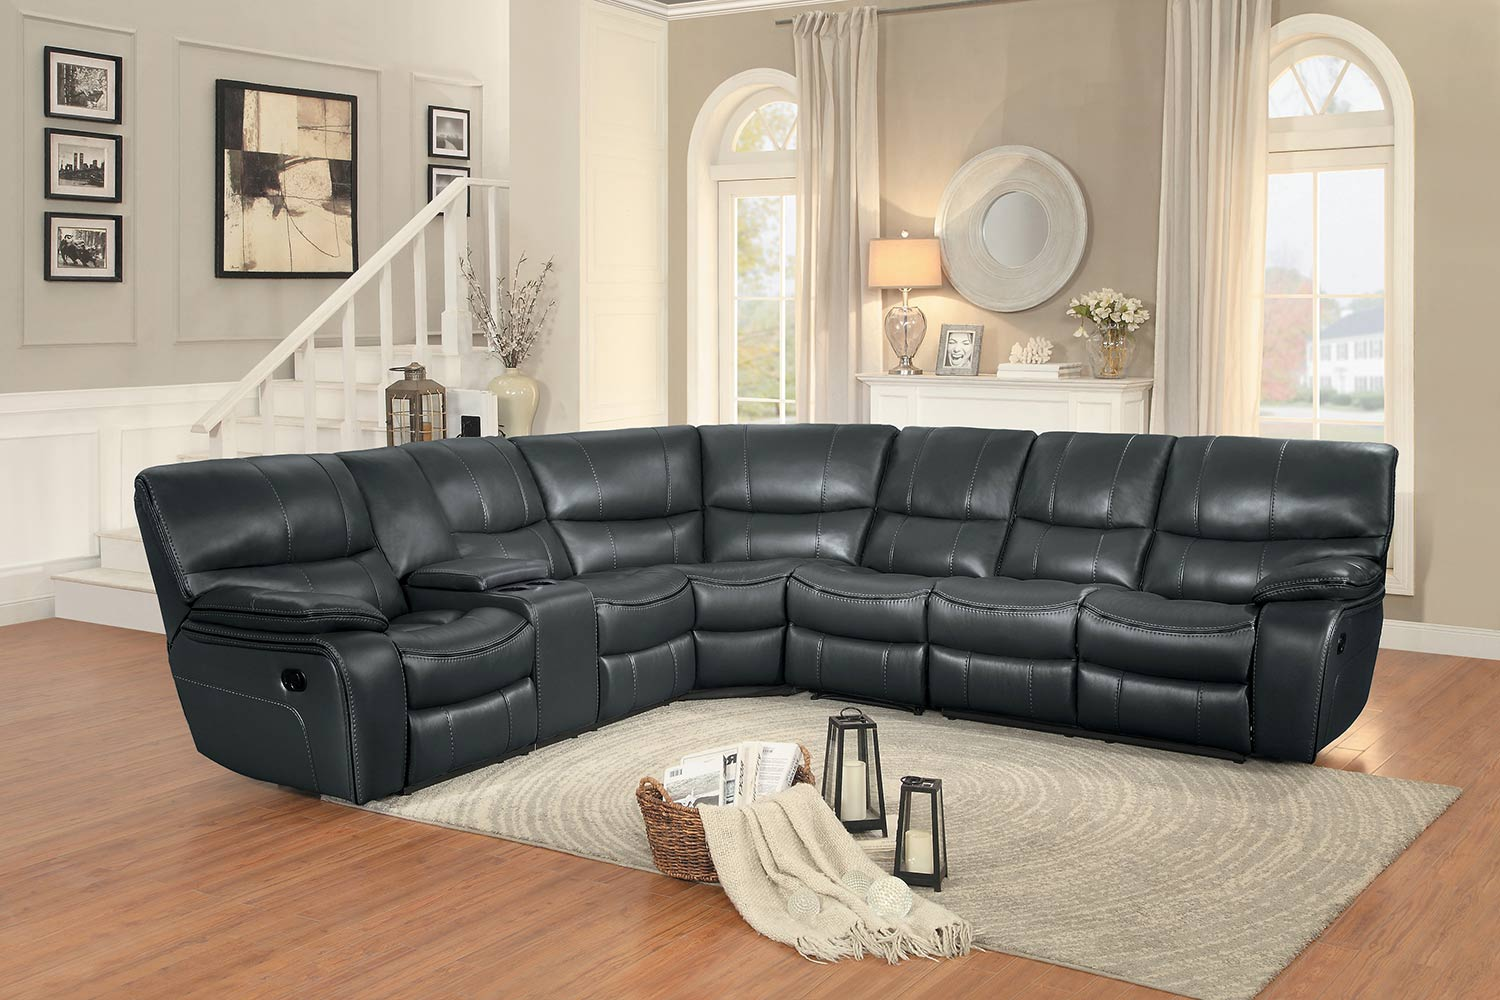 Homelegance Pecos Reclining Sectional Set - Grey Leather Gel Match